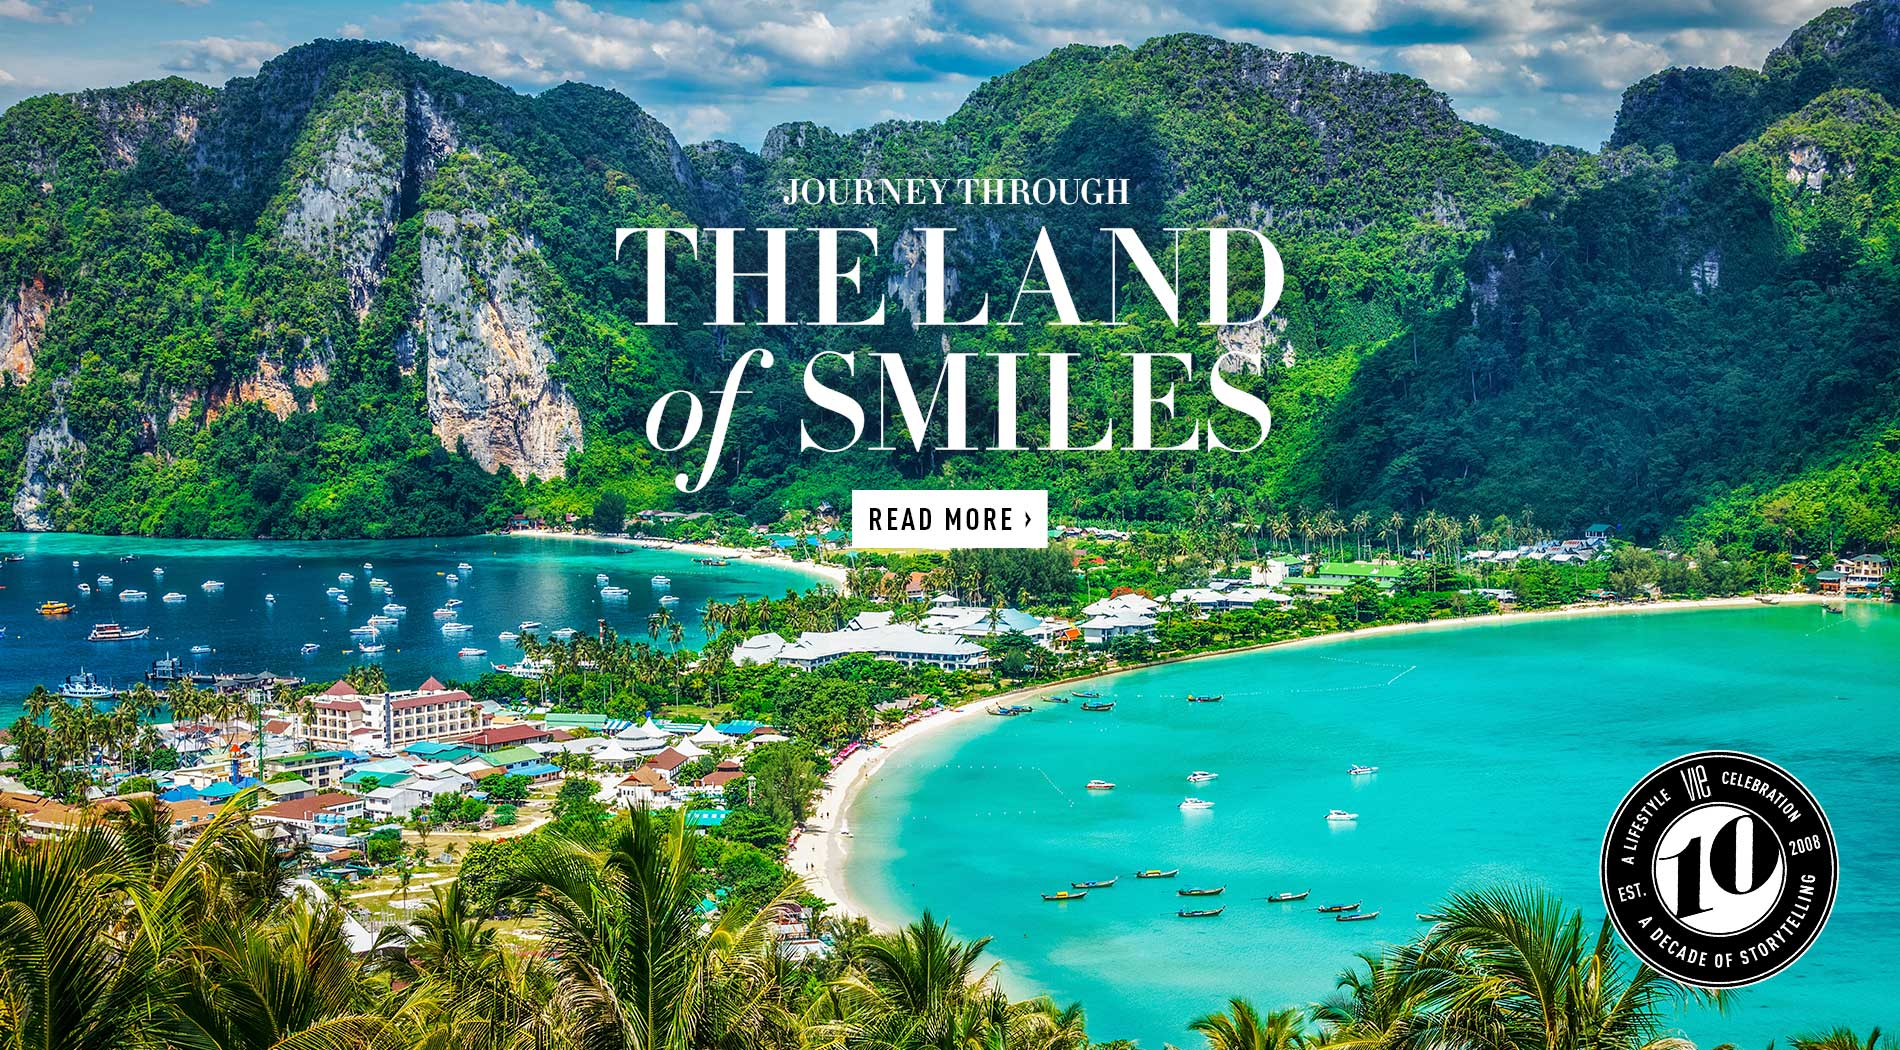 VIE Magazine - June 2018 Travel & Tech Issue - Journey Through The Land of Smiles